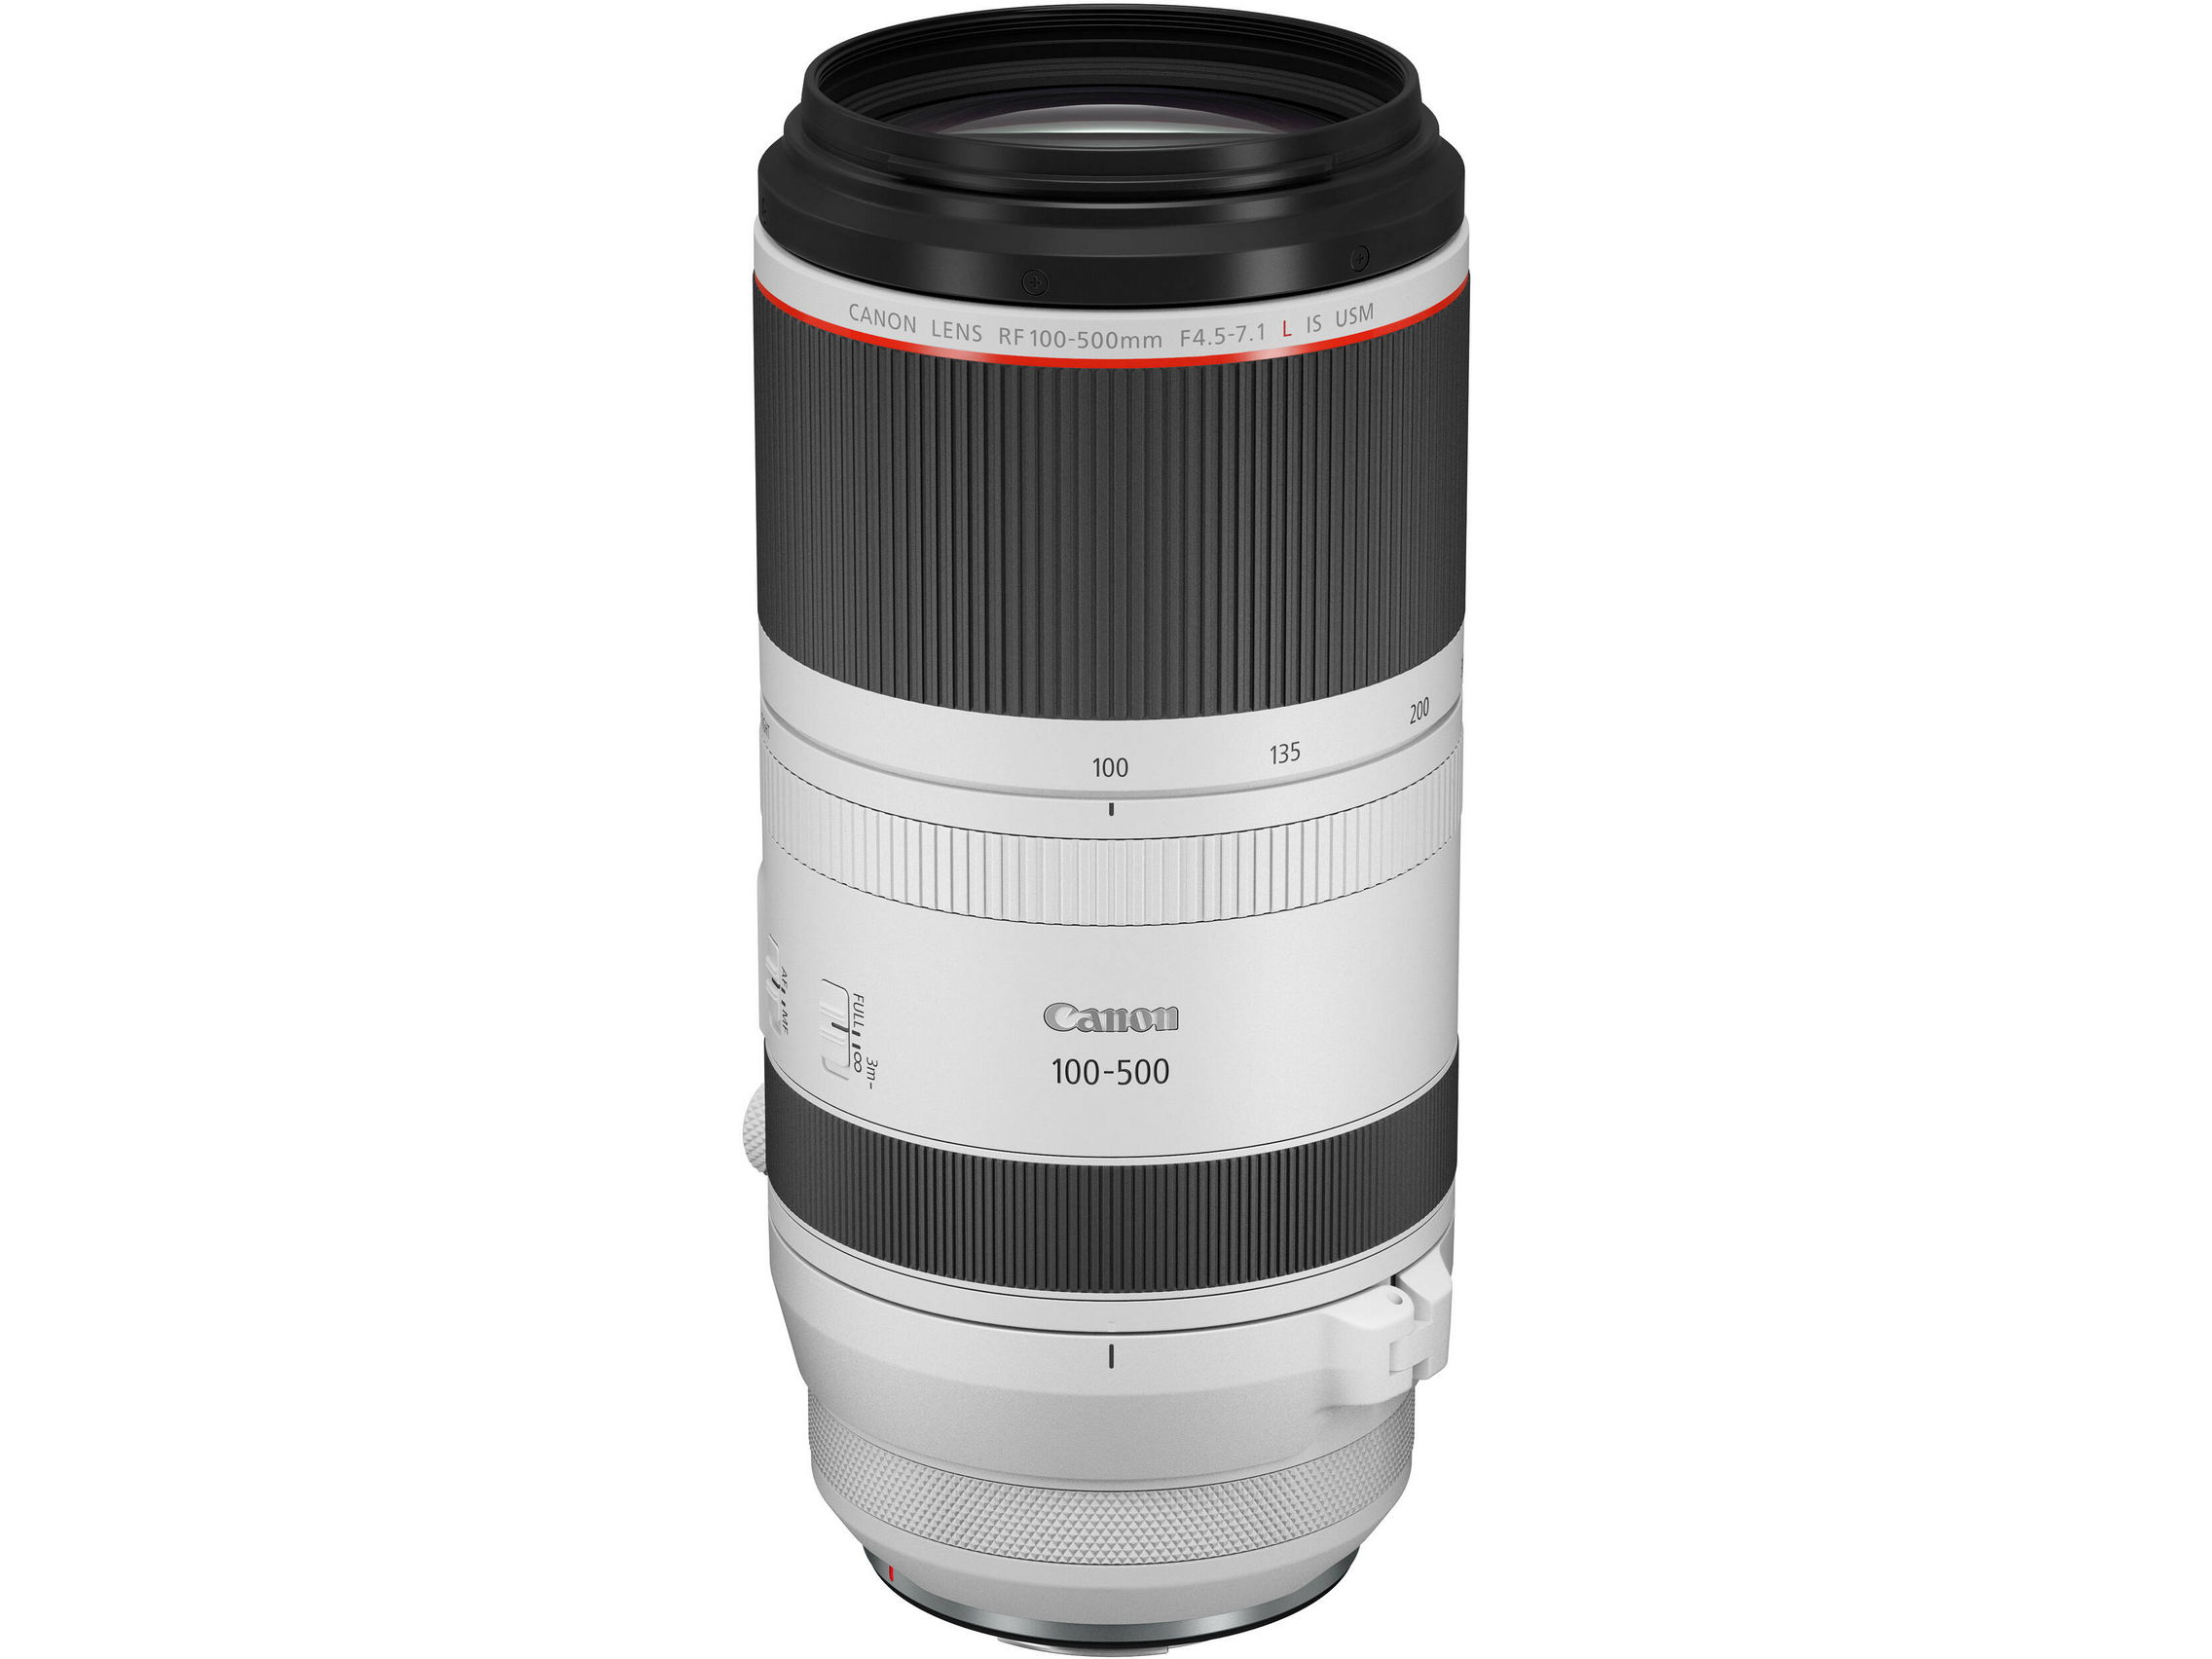 Canon Lens RF 100-500mm F4.5-7.1 L IS USM